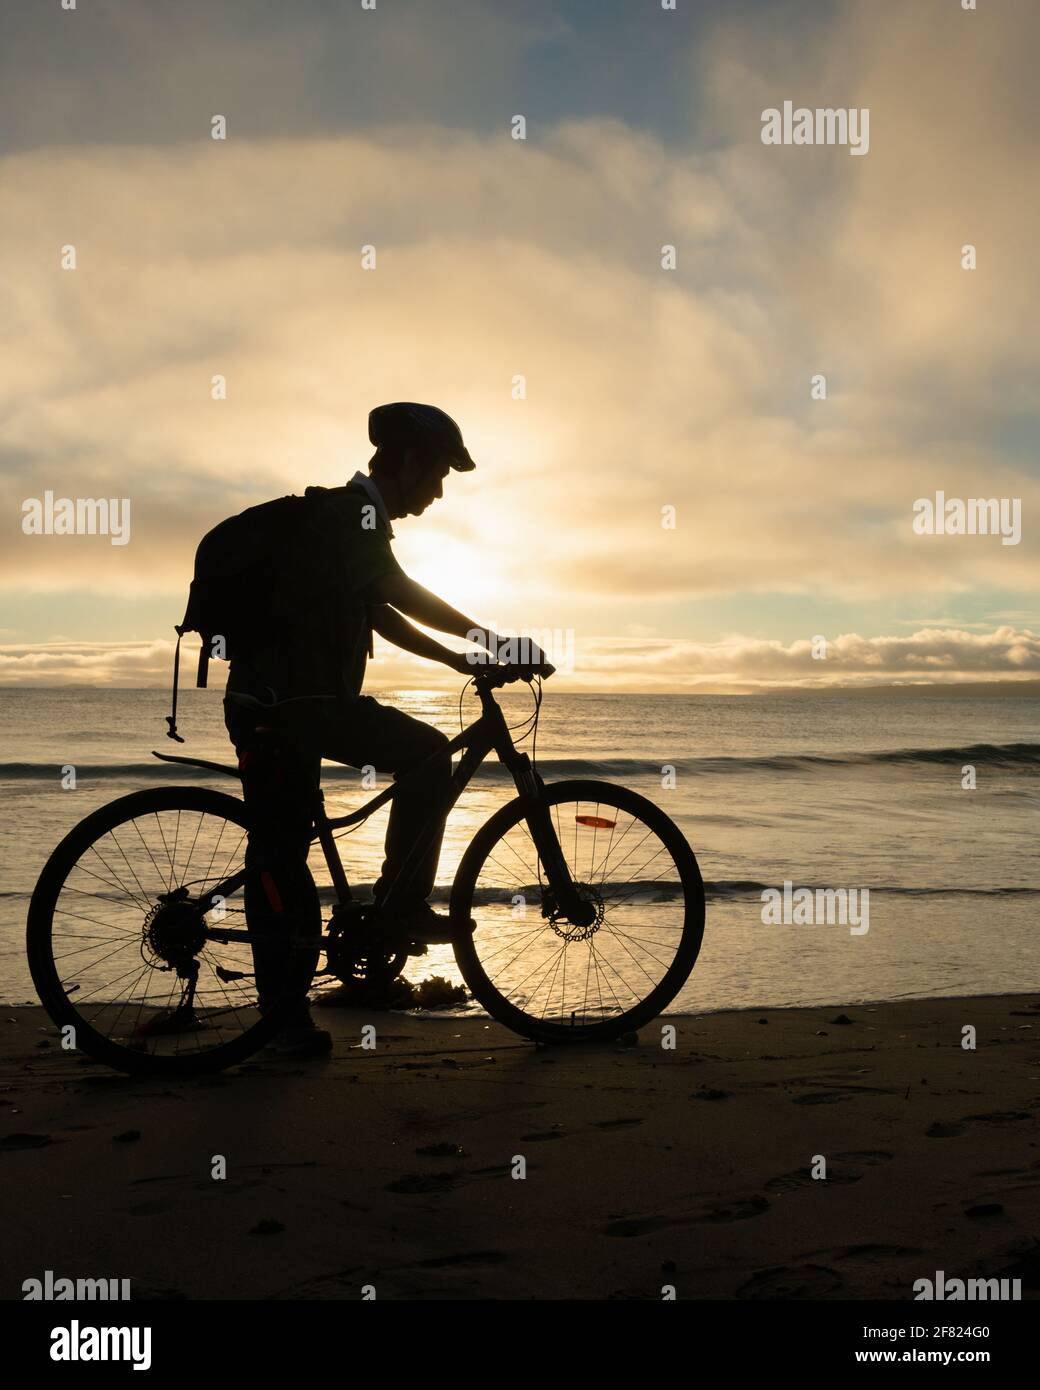 Silhouette image of a cyclist getting ready to ride on the beach at sunrise. Vertical format. Stock Photo